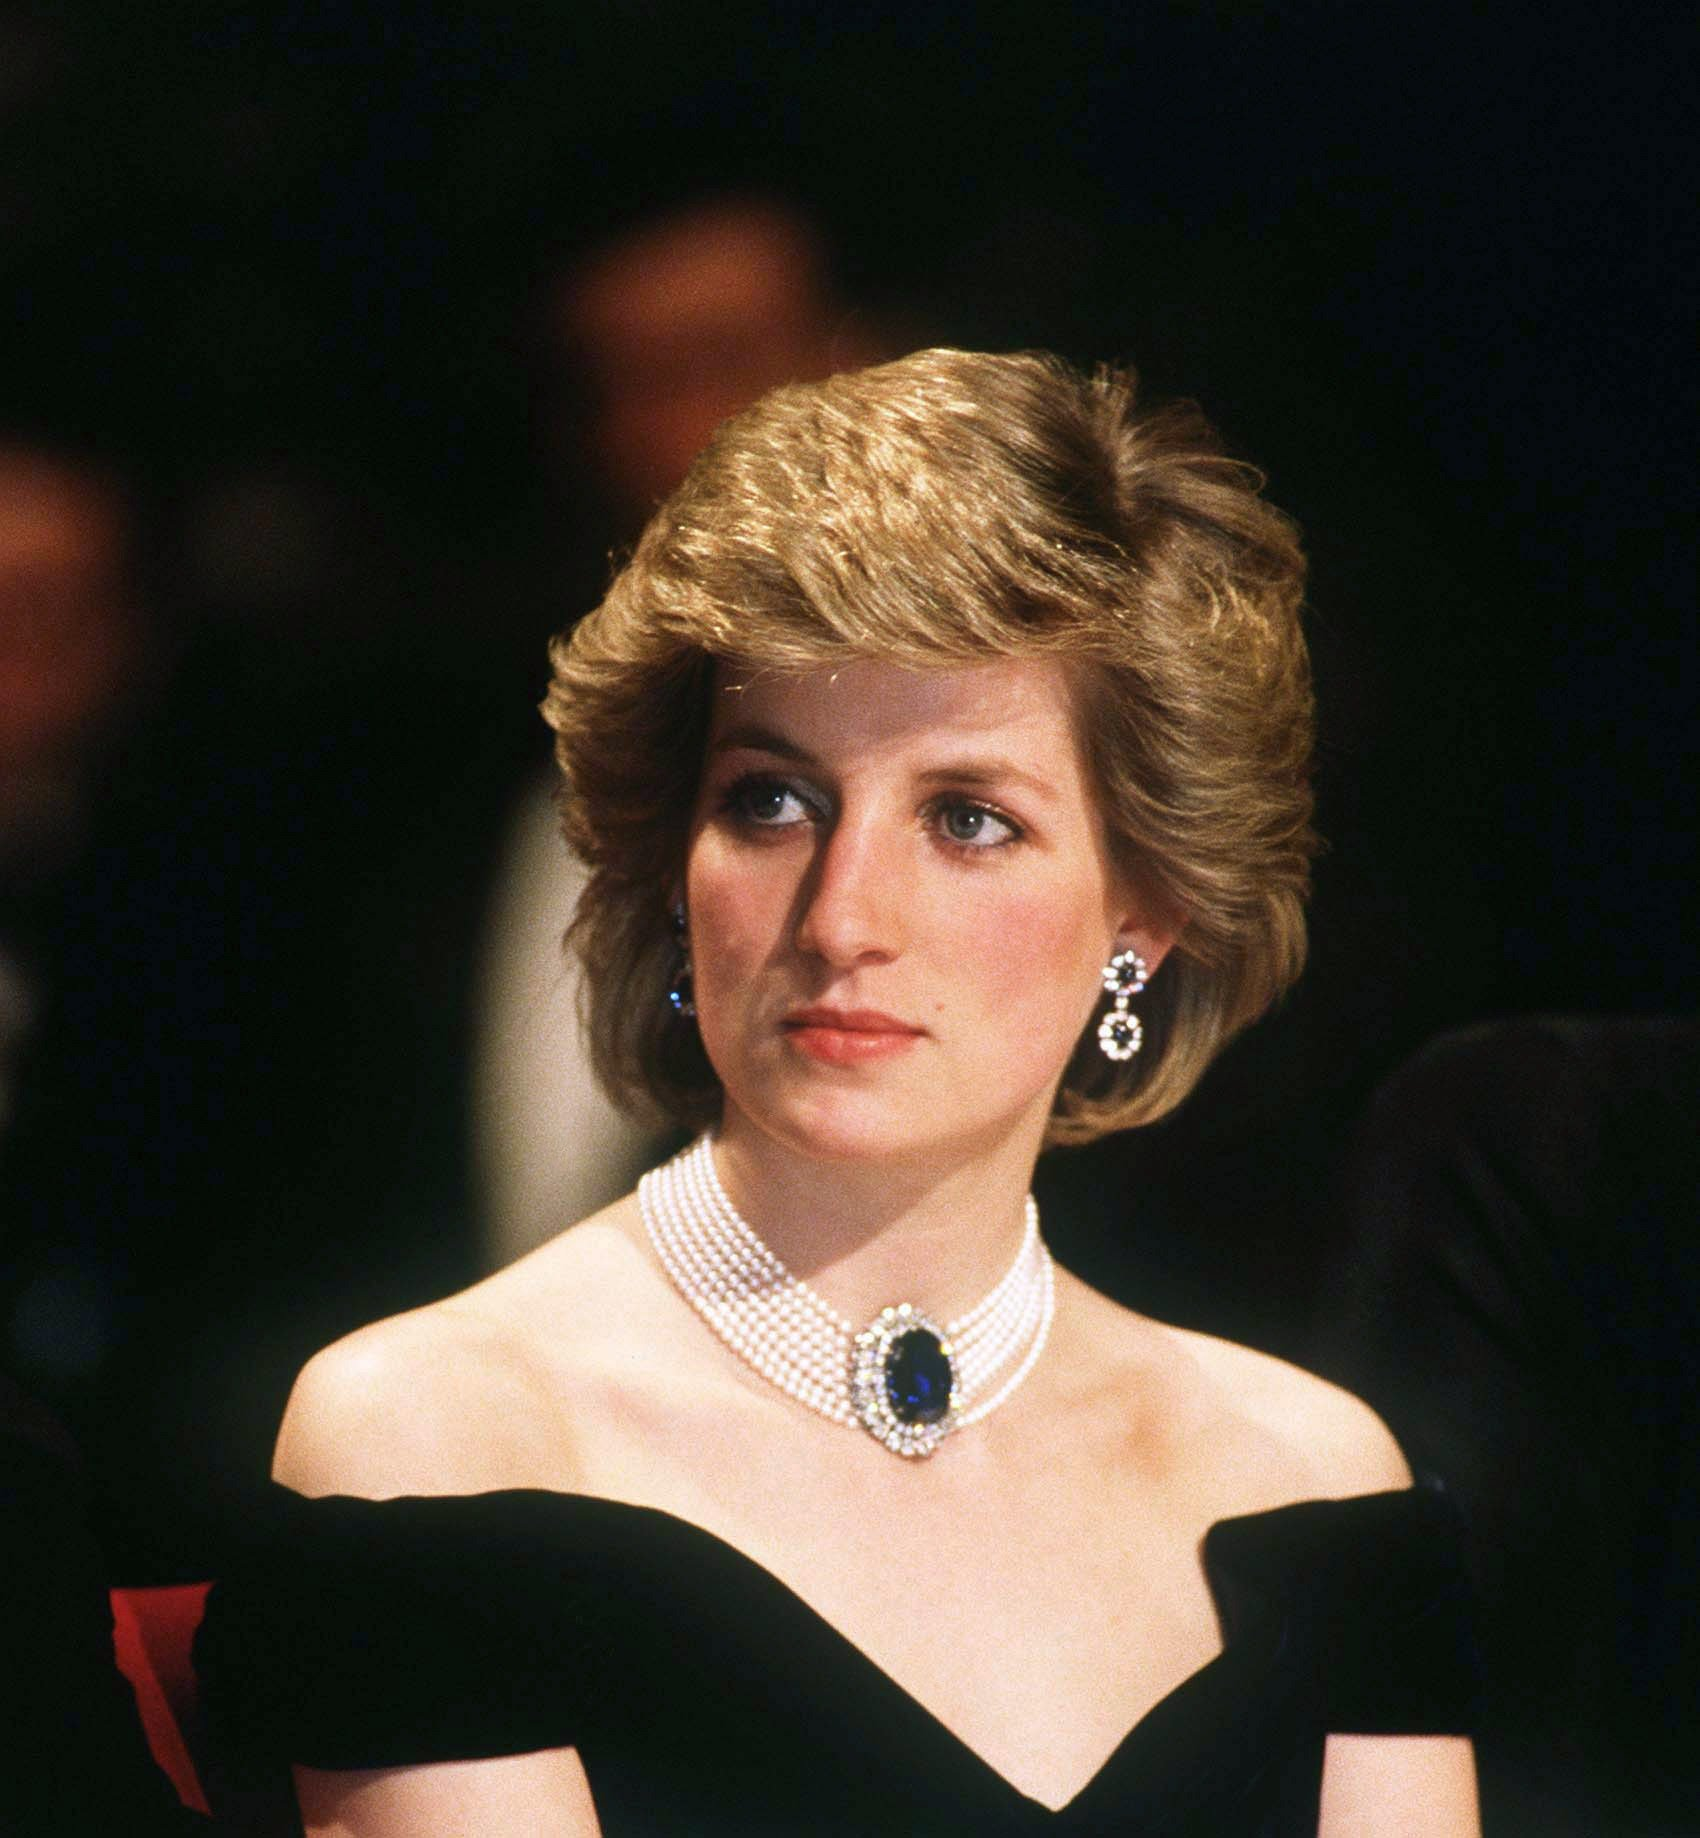 Diana, princesse de Galles assiste à un banquet | Photo : Getty Images.